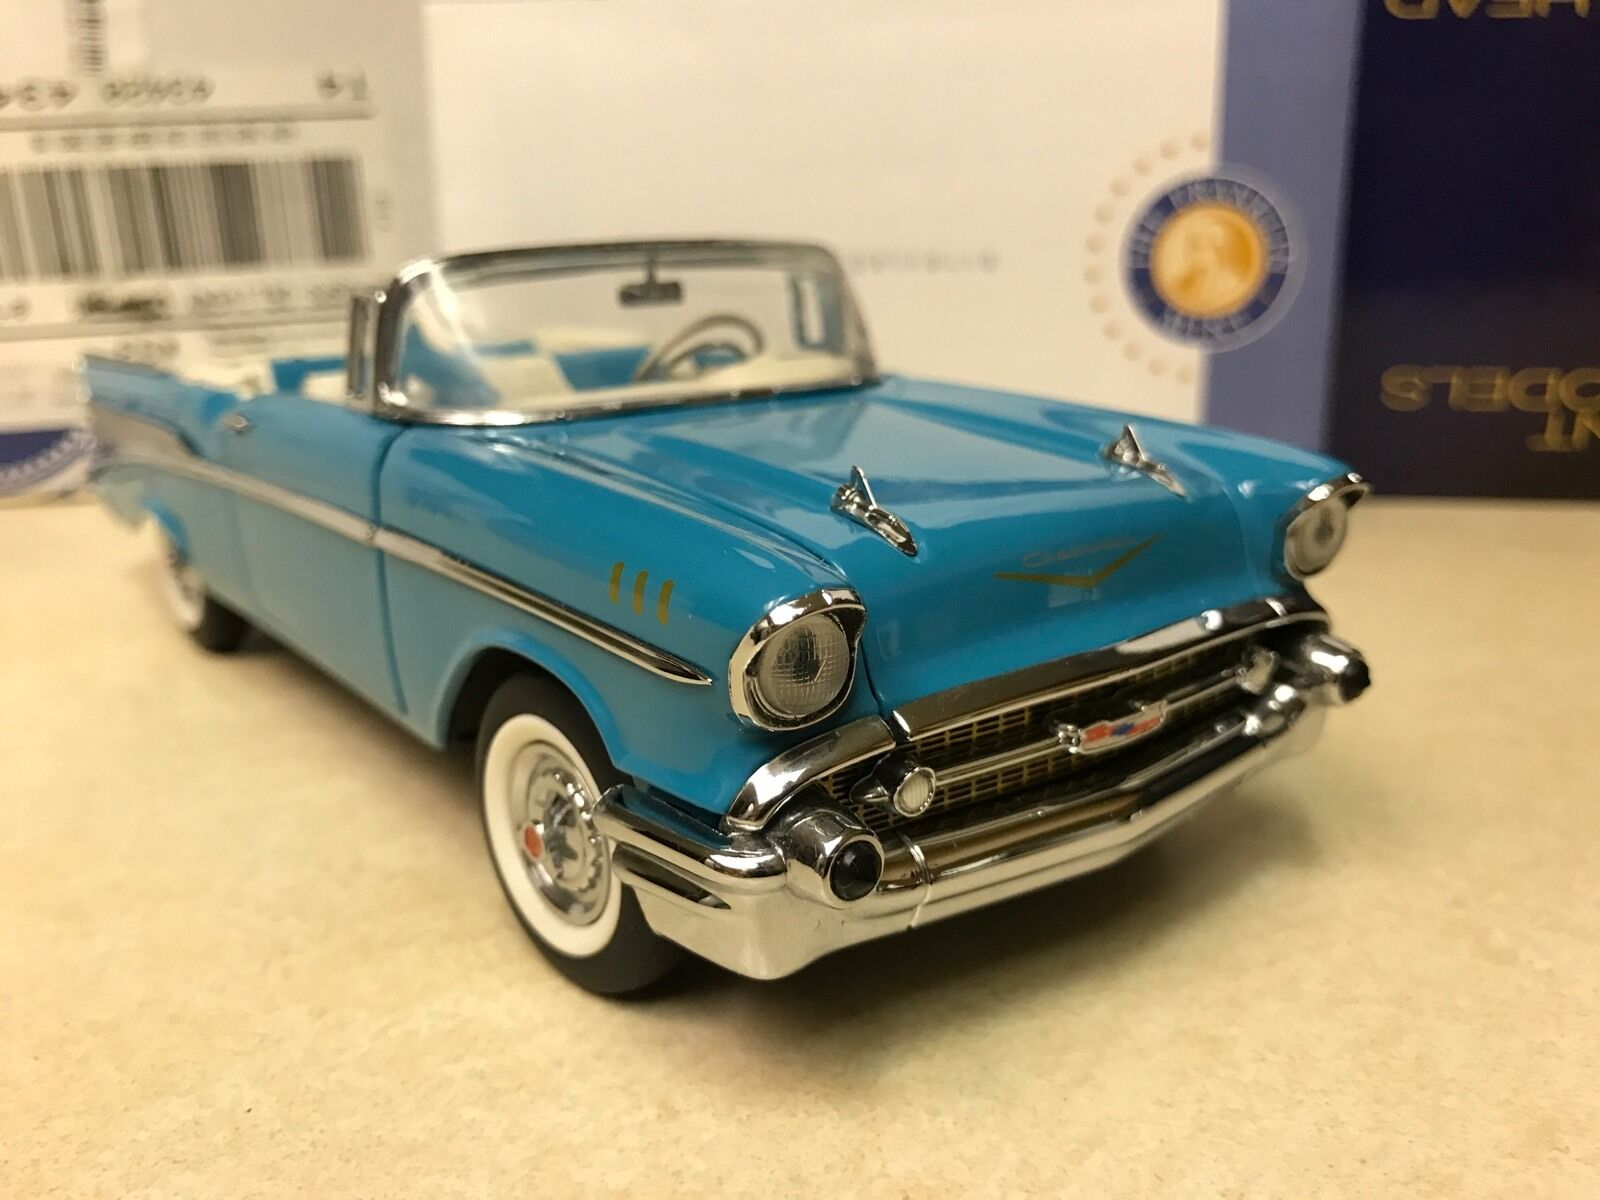 1 24 Franklin Mint Larkspur bluee 1957 Chevrolet Bel Air Congreenible B11C407